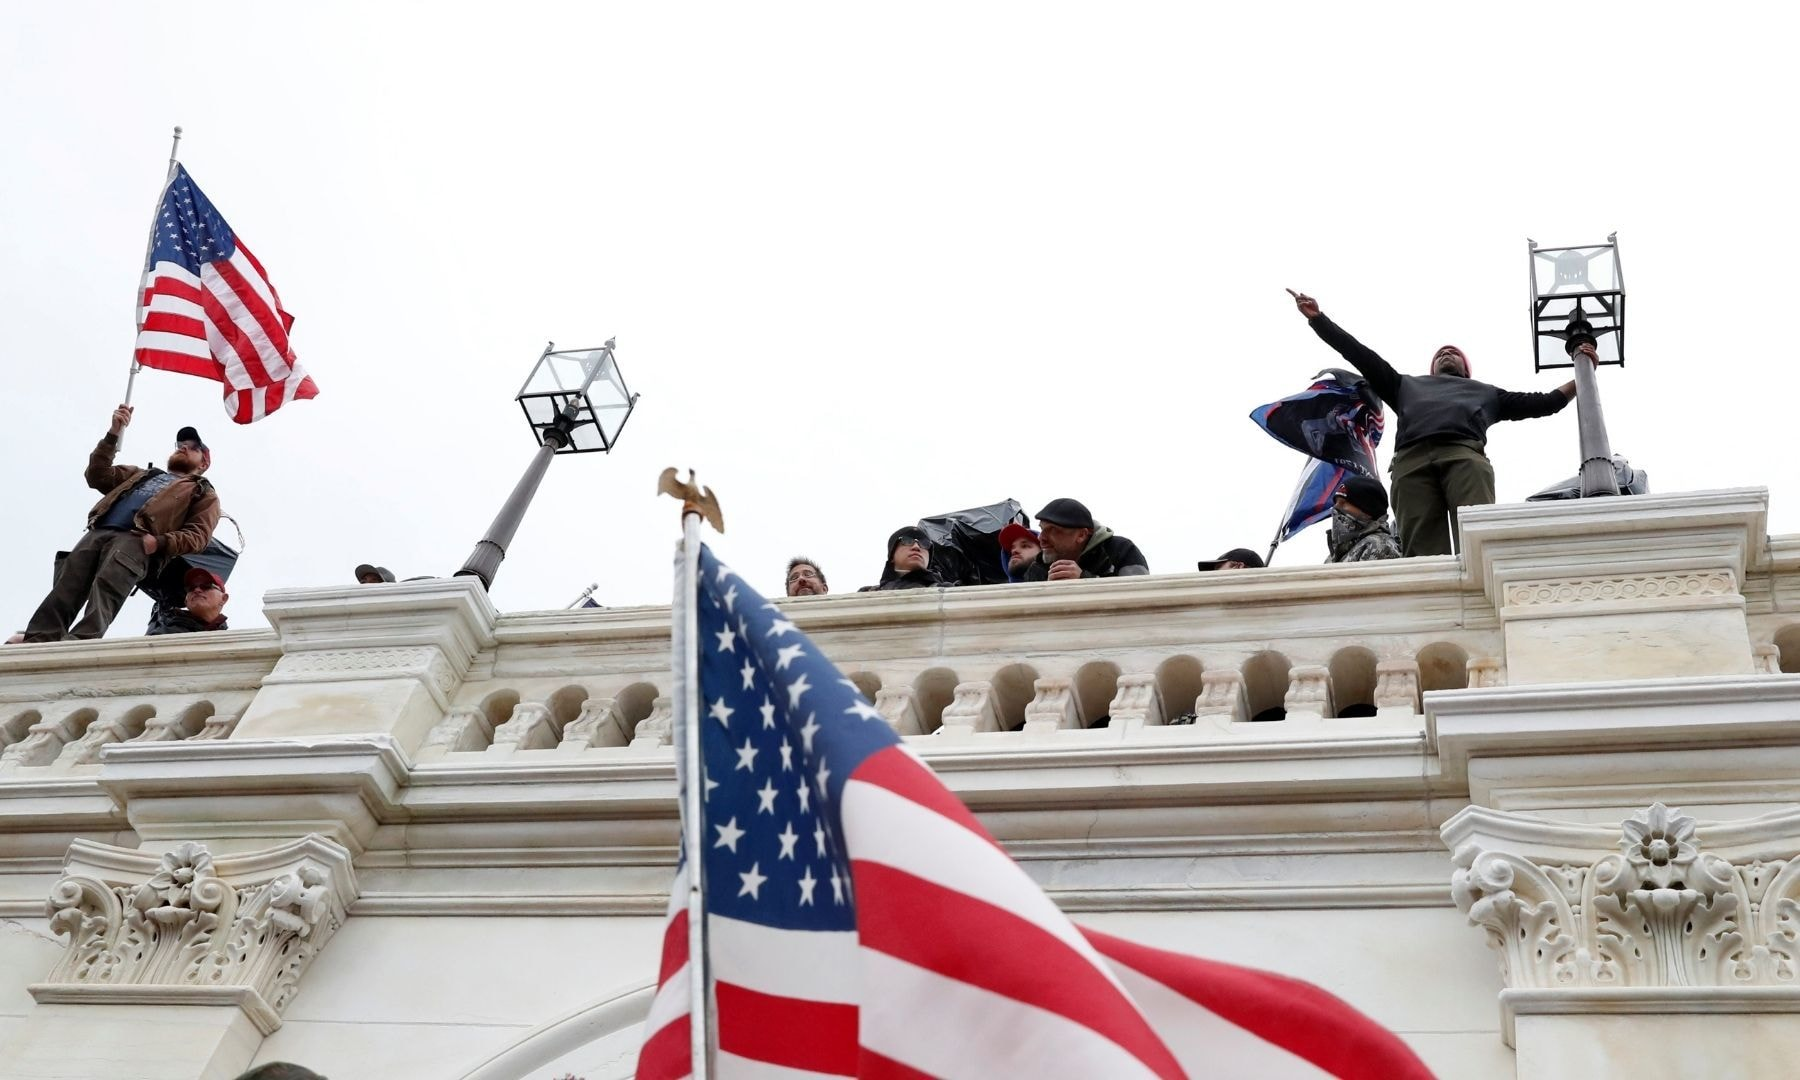 Pro-Trump protesters wave American flags after breaching the Capitol barricades during a rally to contest the certification of the 2020 US presidential election results by the Congress, at the US Capitol Building in Washington on January 6, 2021. — Reuters